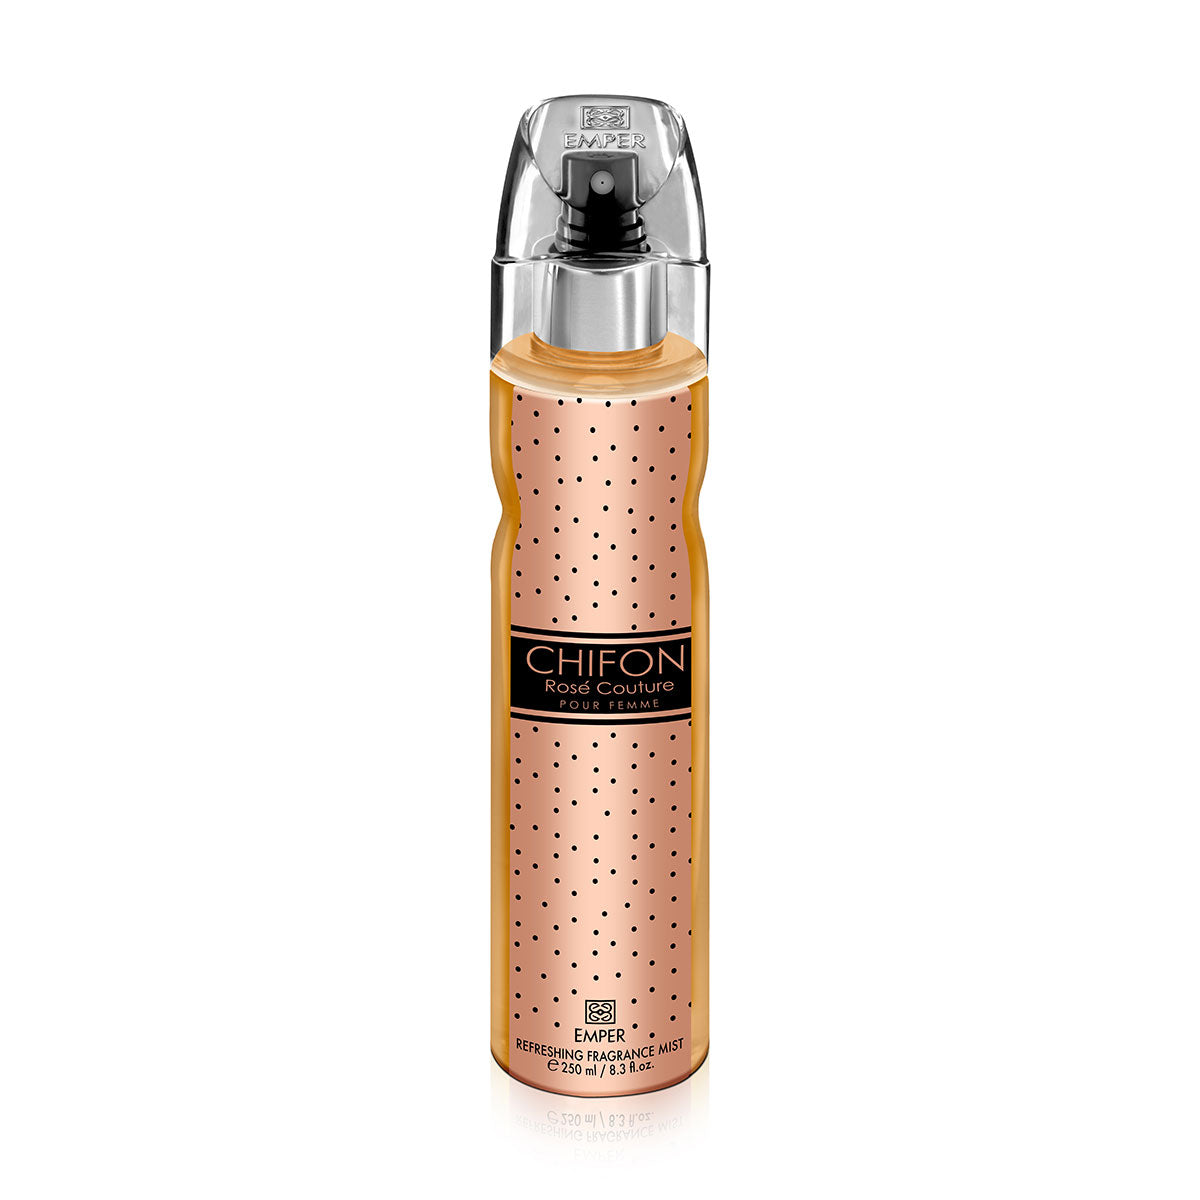 Chifon Rose Couture Body Mist